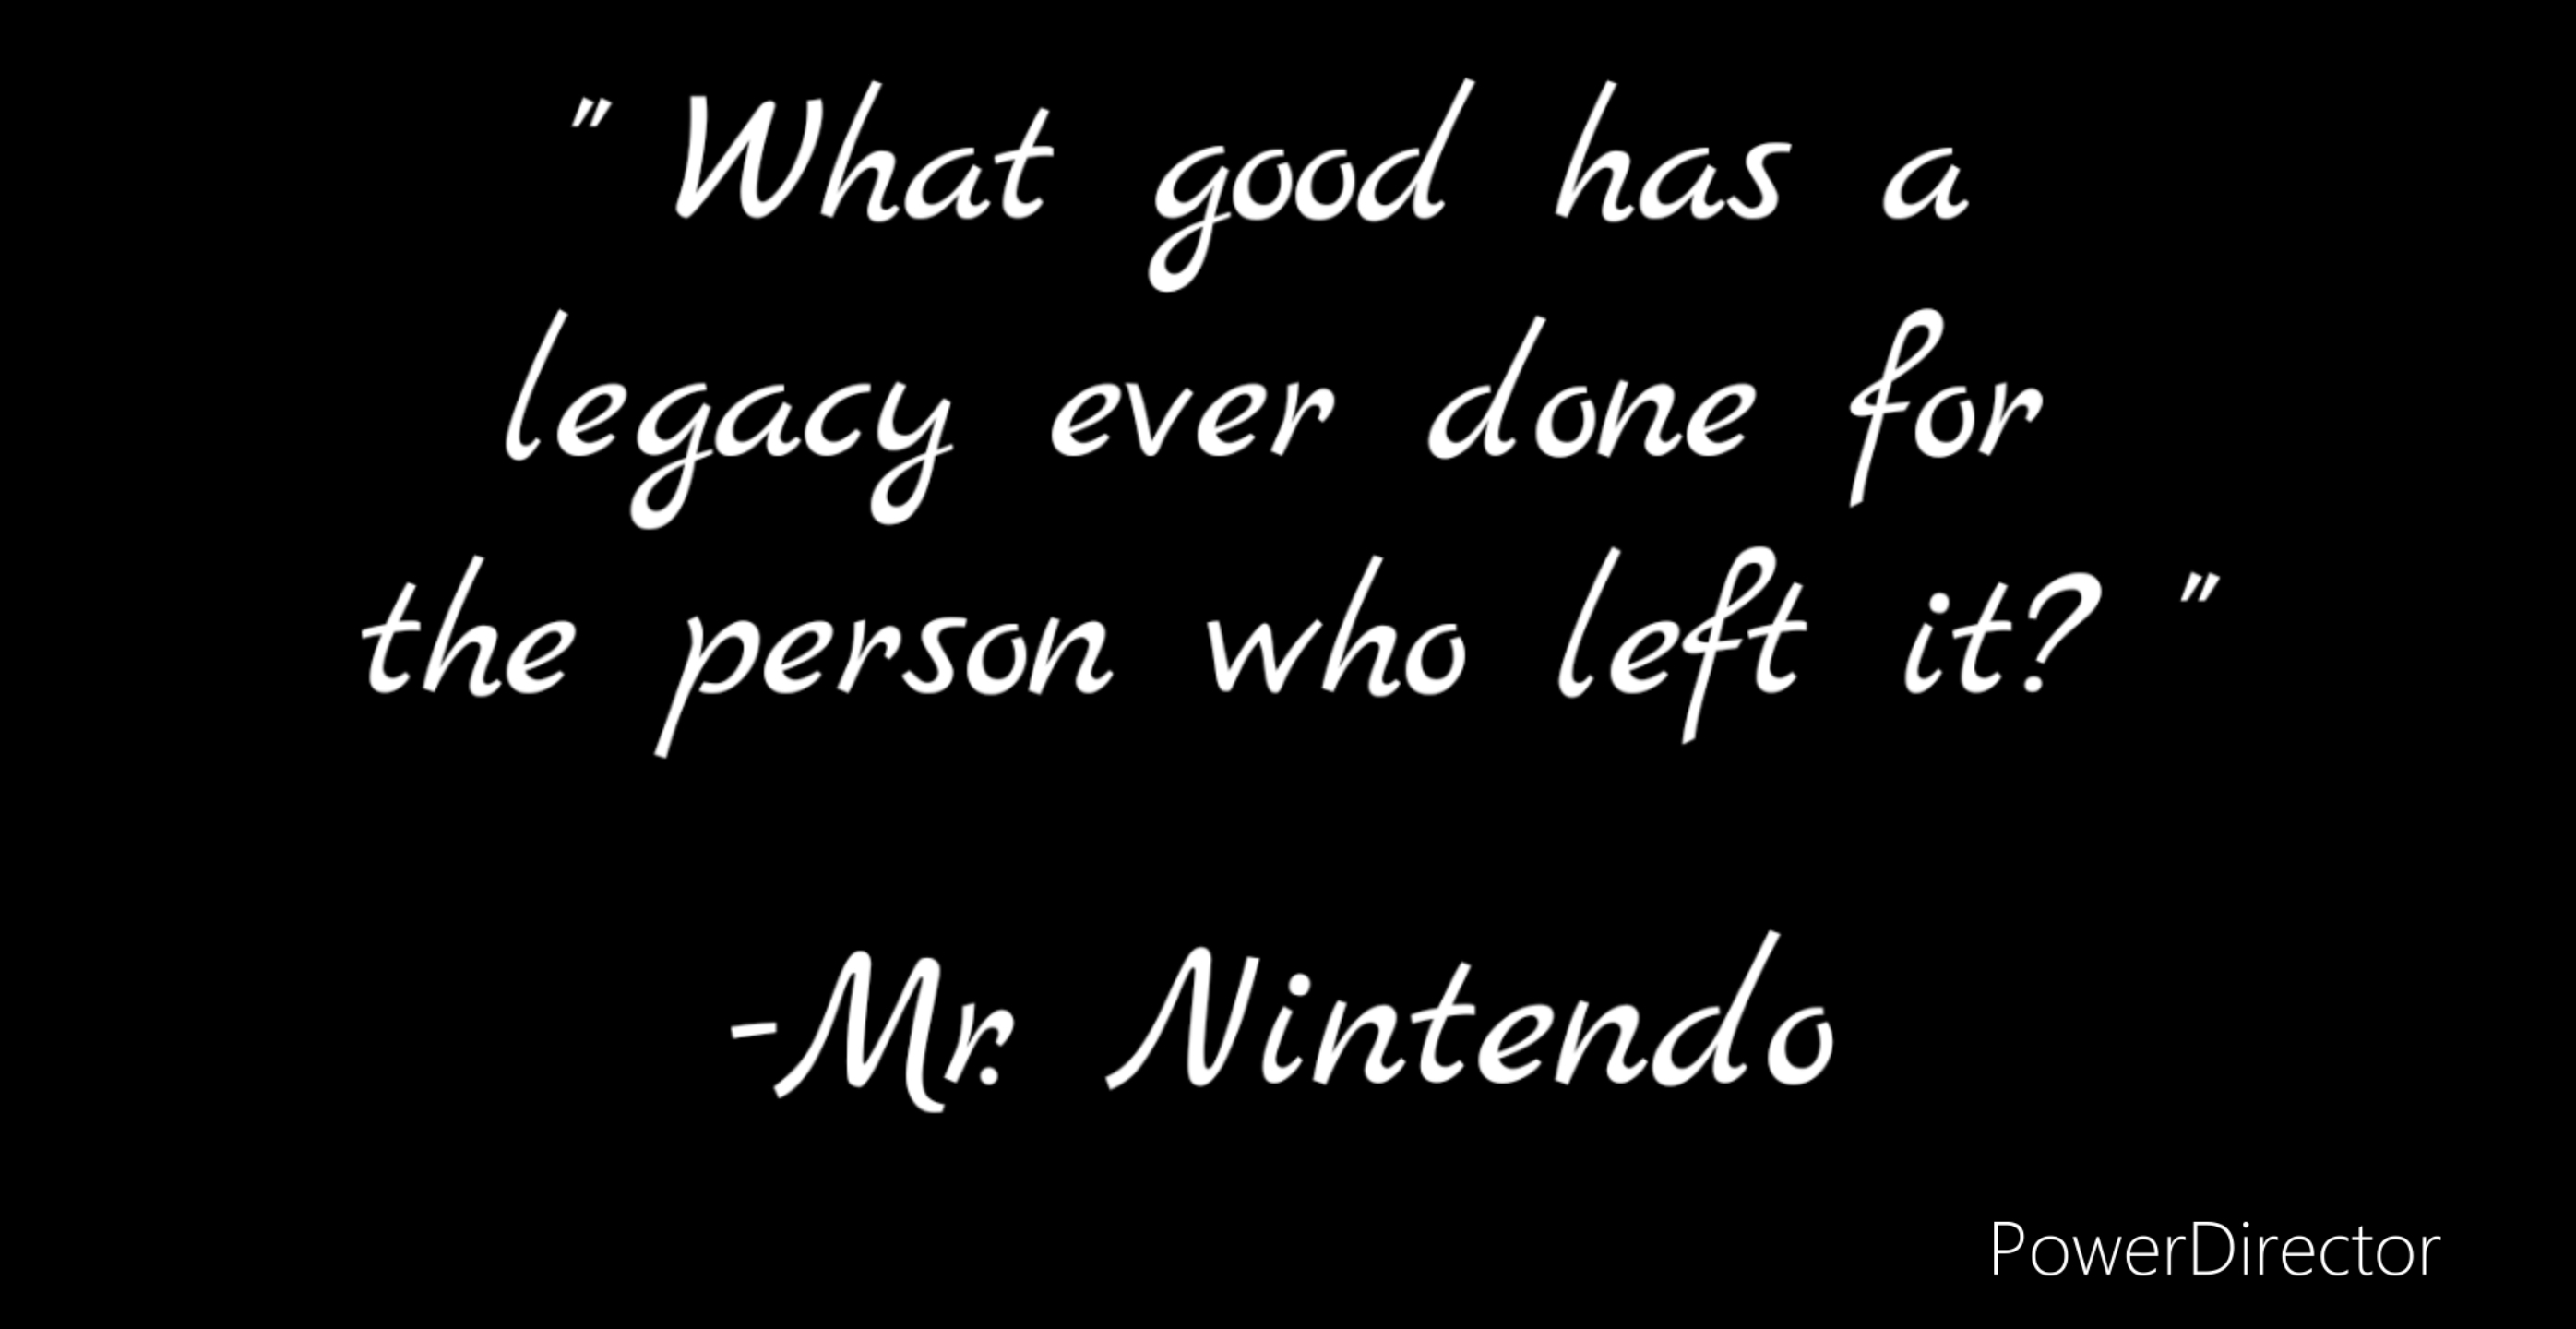 """What good has a legacy ever done for the person who left it?"" [2792 x 1440]"